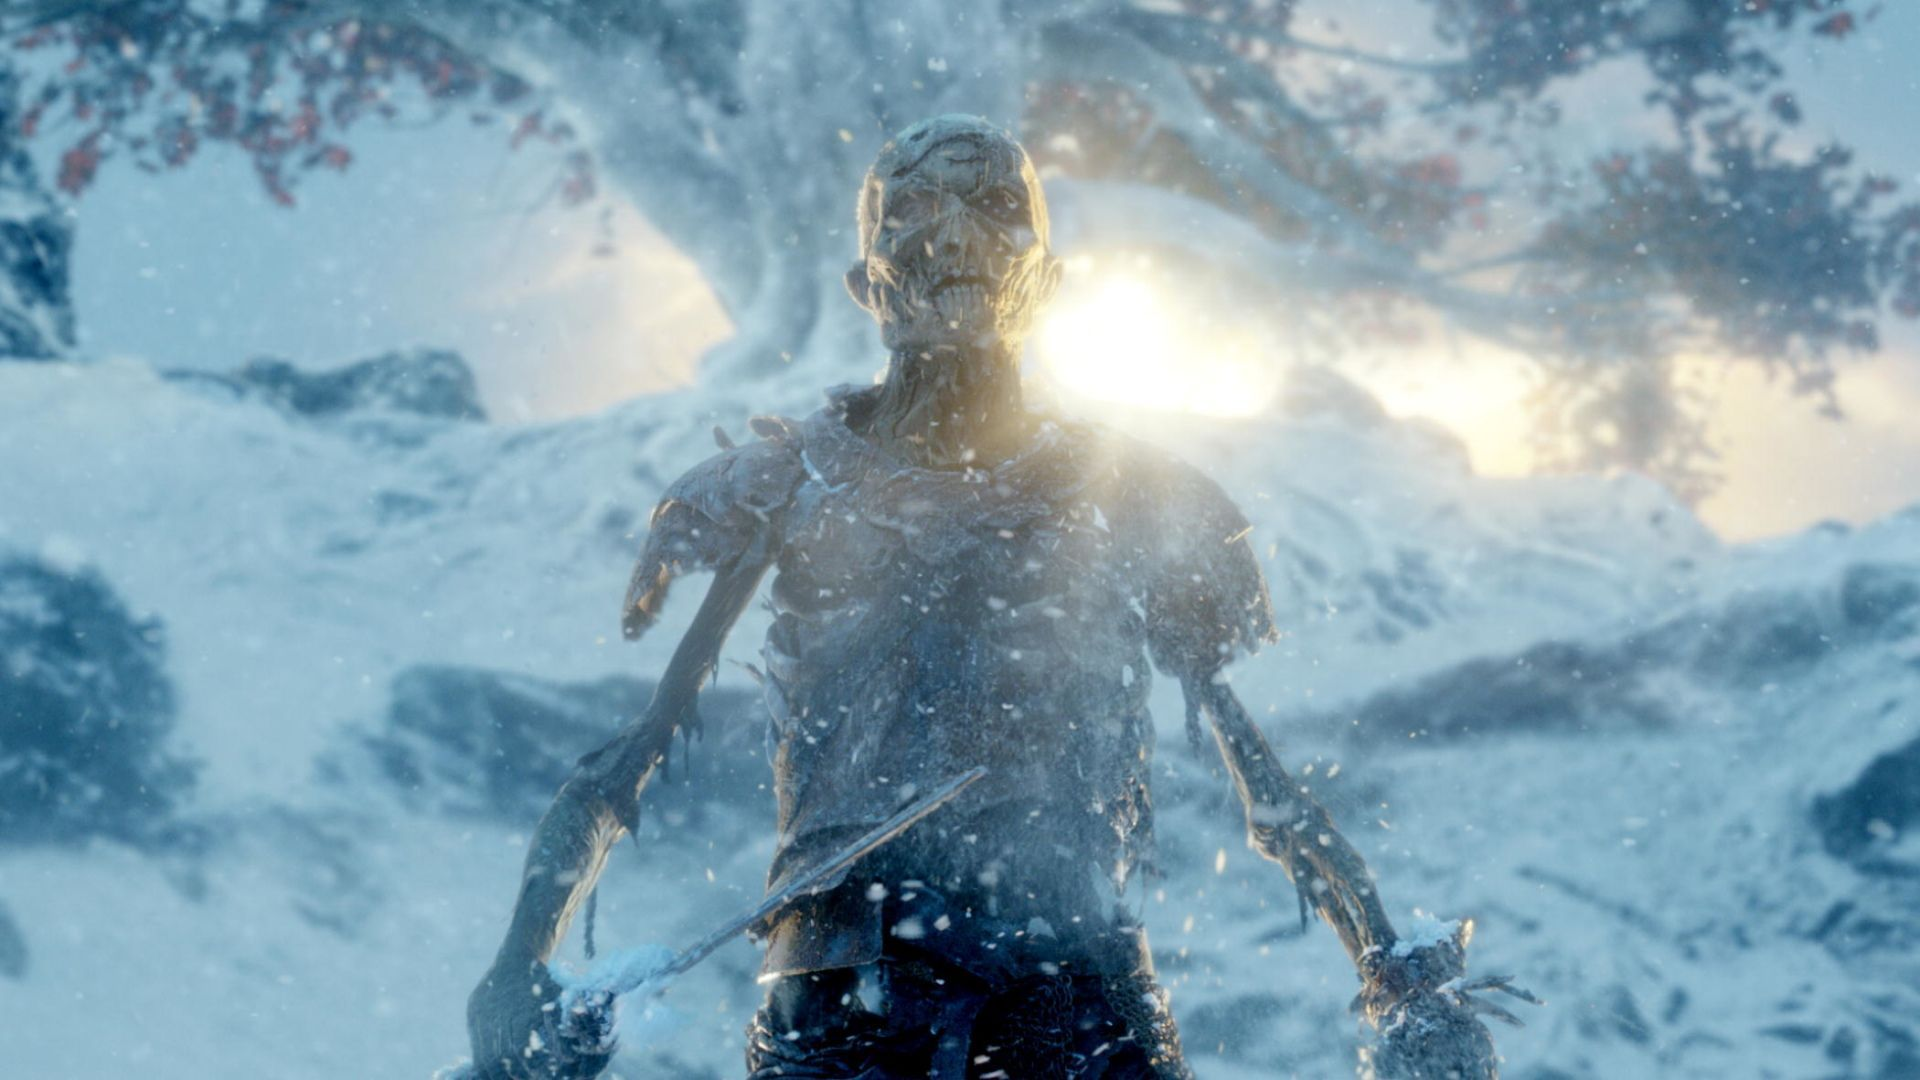 Game Of Thrones White Walker Wallpapers Top Free Game Of Thrones